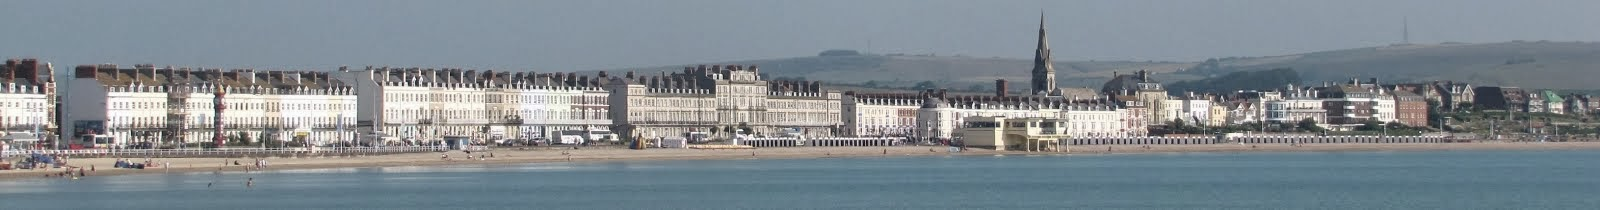 Whats On In Weymouth 2014 Weymouth's SUPER Holiday Guide Pubs Clubs Restaurants